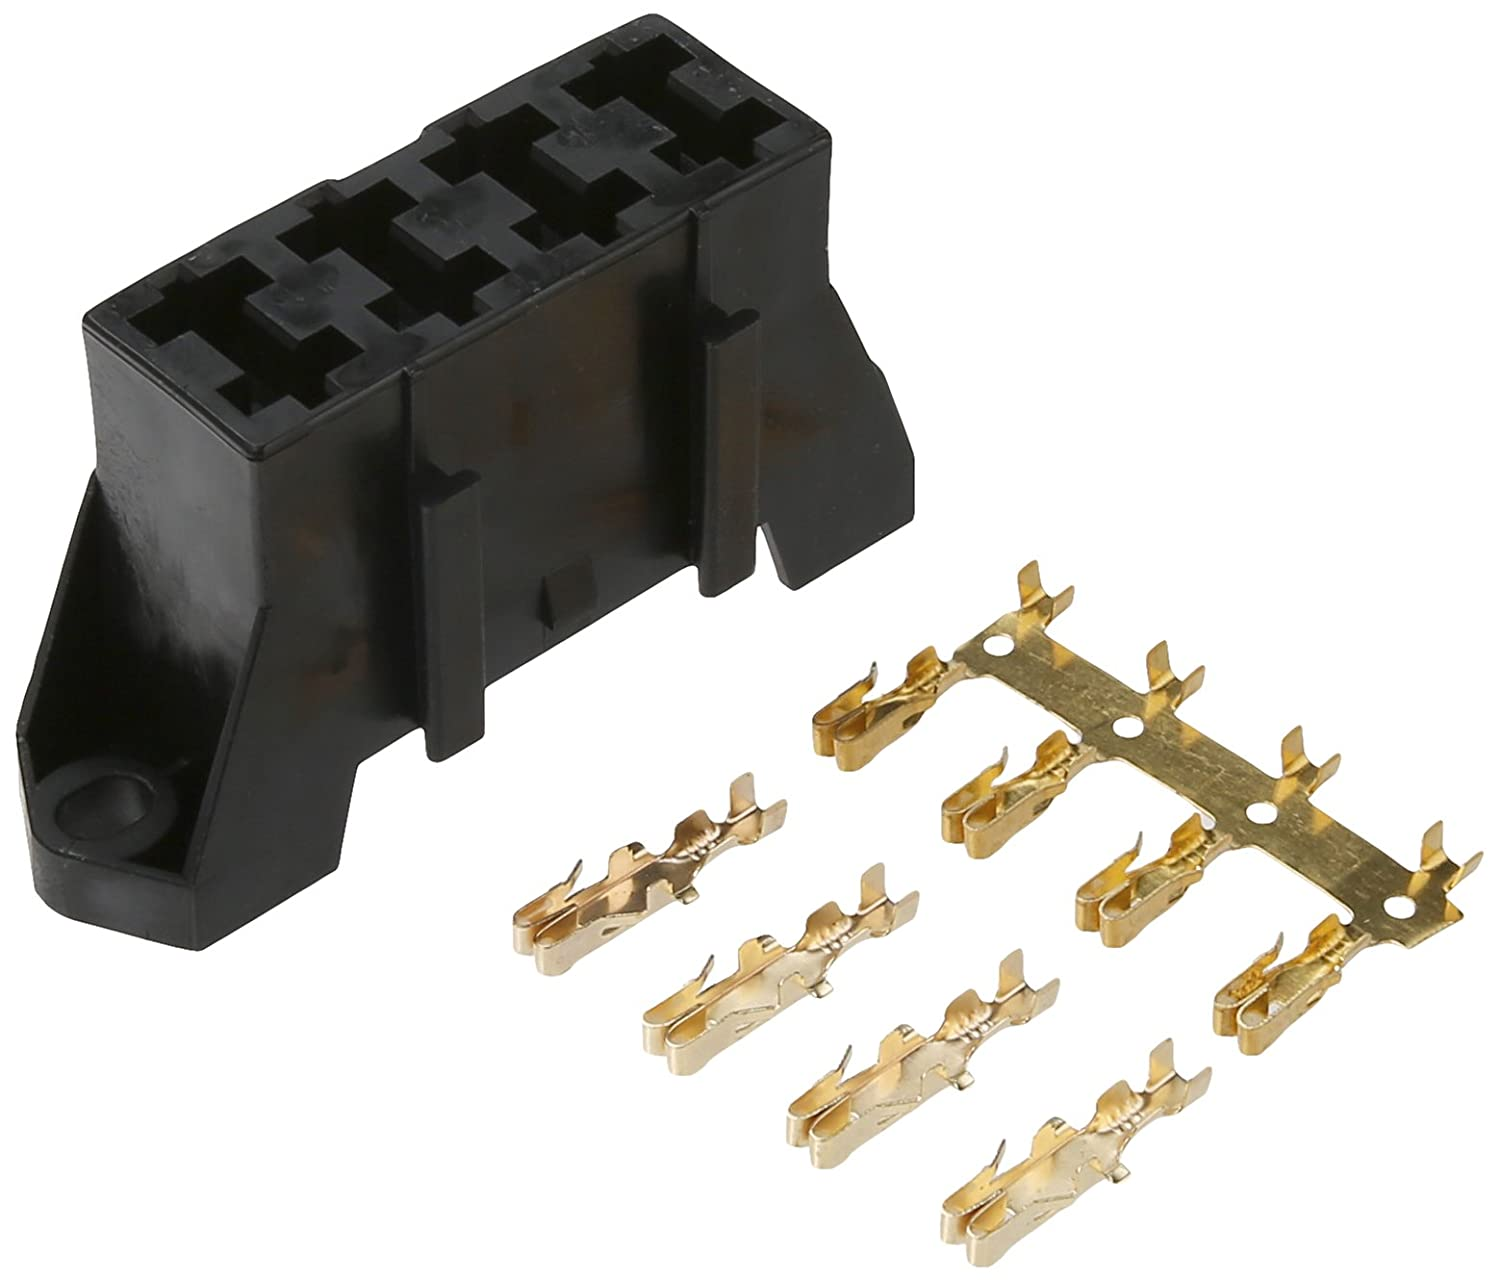 61MLvIzHm9L._SL1500_ amazon com dorman 85668 black fuse block holds 4 blade fuses 4 way fuse box at gsmportal.co